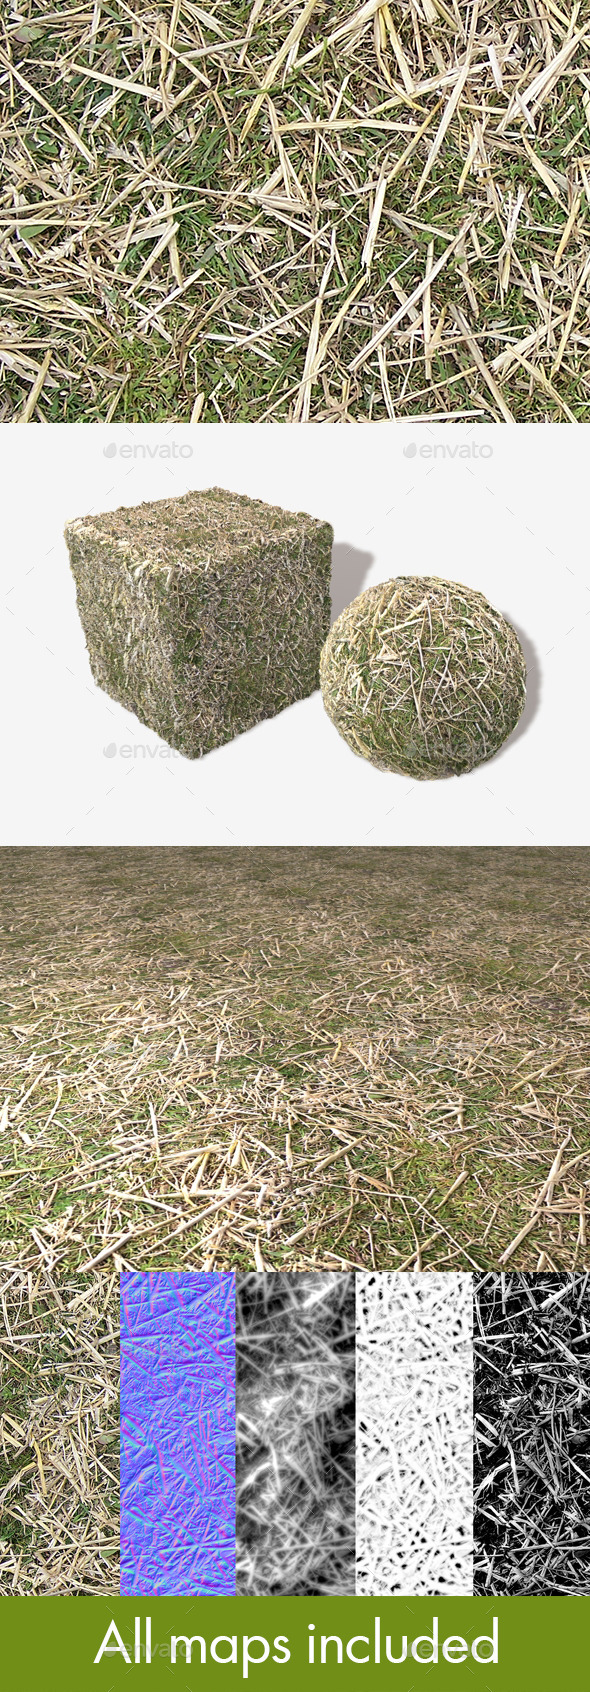 Straw on Grass Seamless Texture - 3DOcean Item for Sale